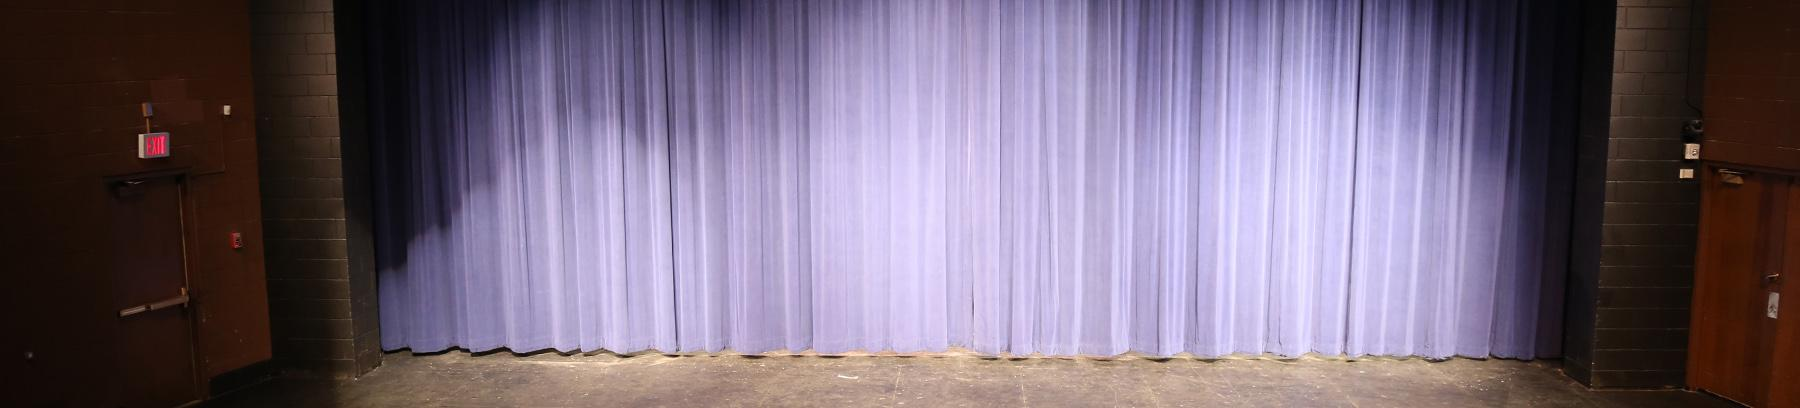 Image of west campus theater curtain.